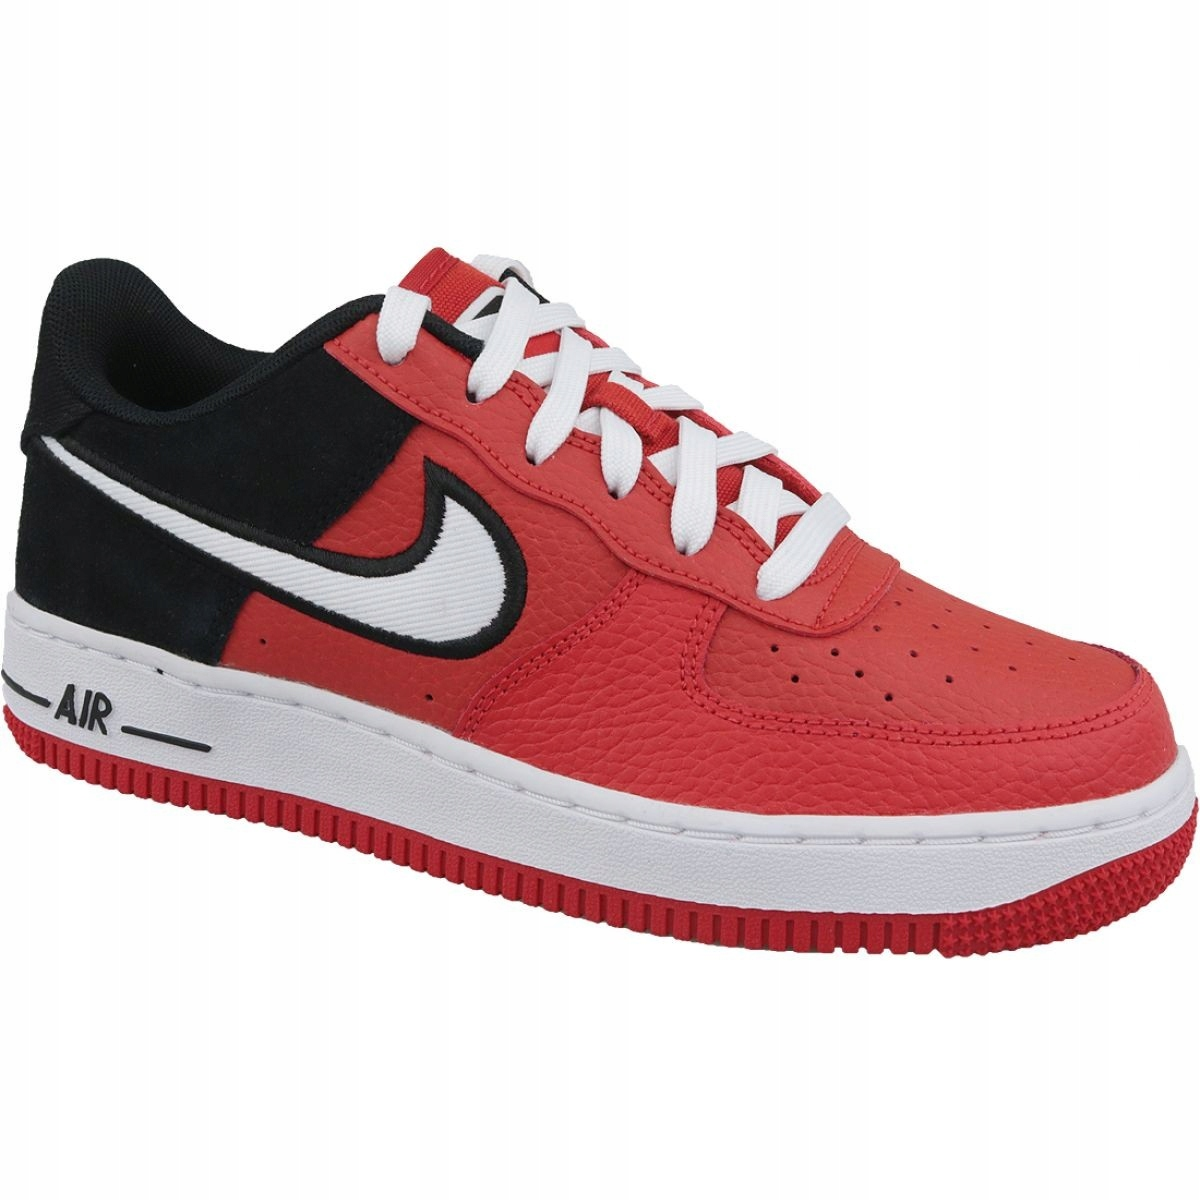 Buty Nike Air Force 1 LV8 1 GS W